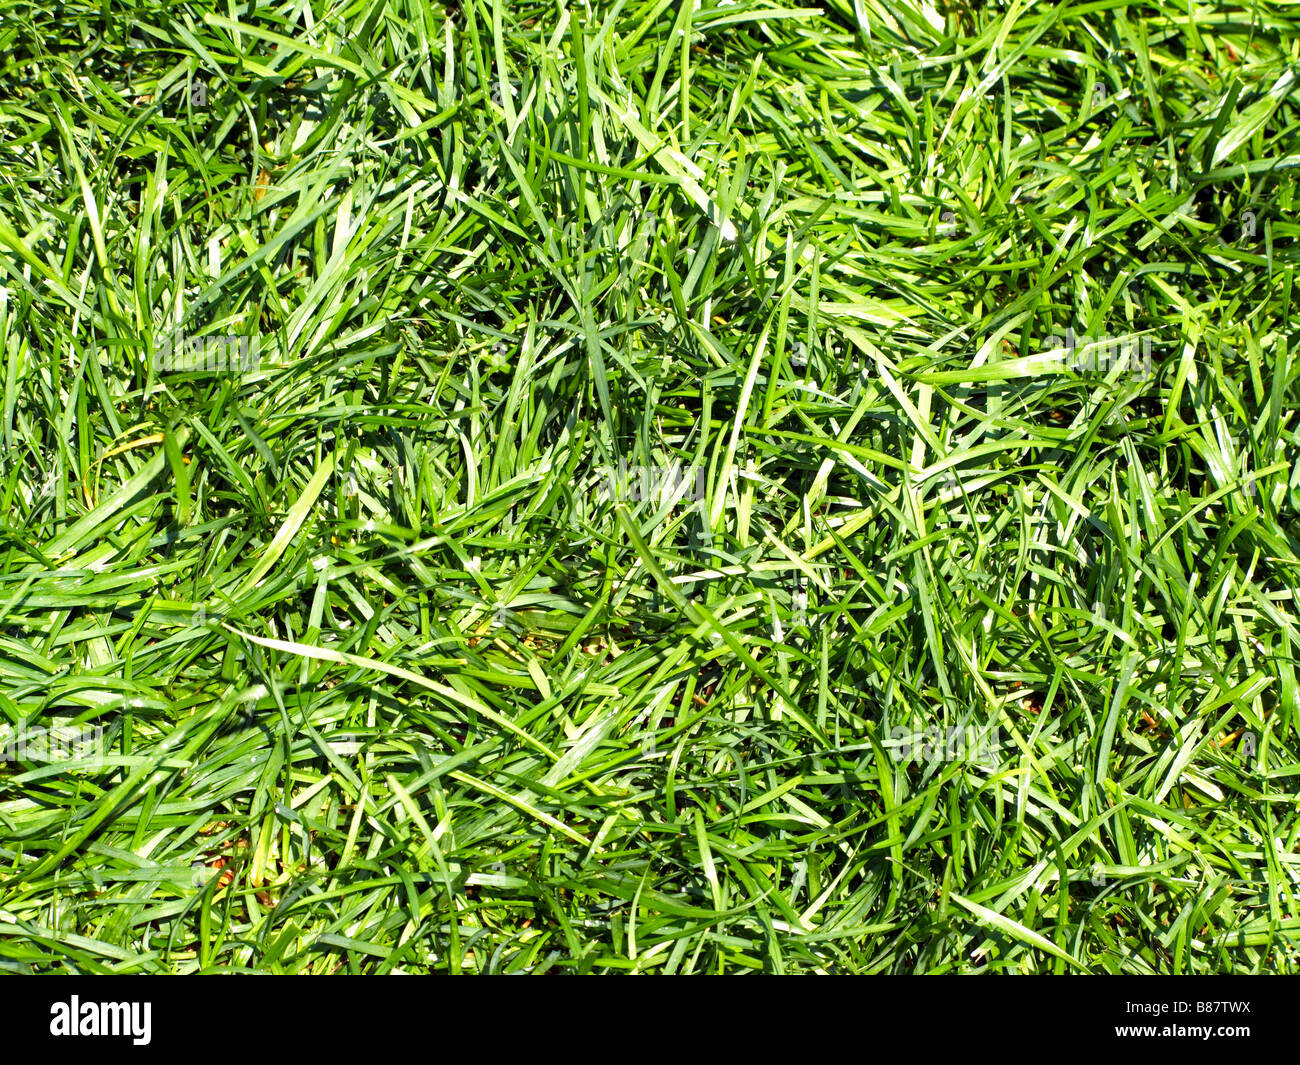 Grass Photo Stock